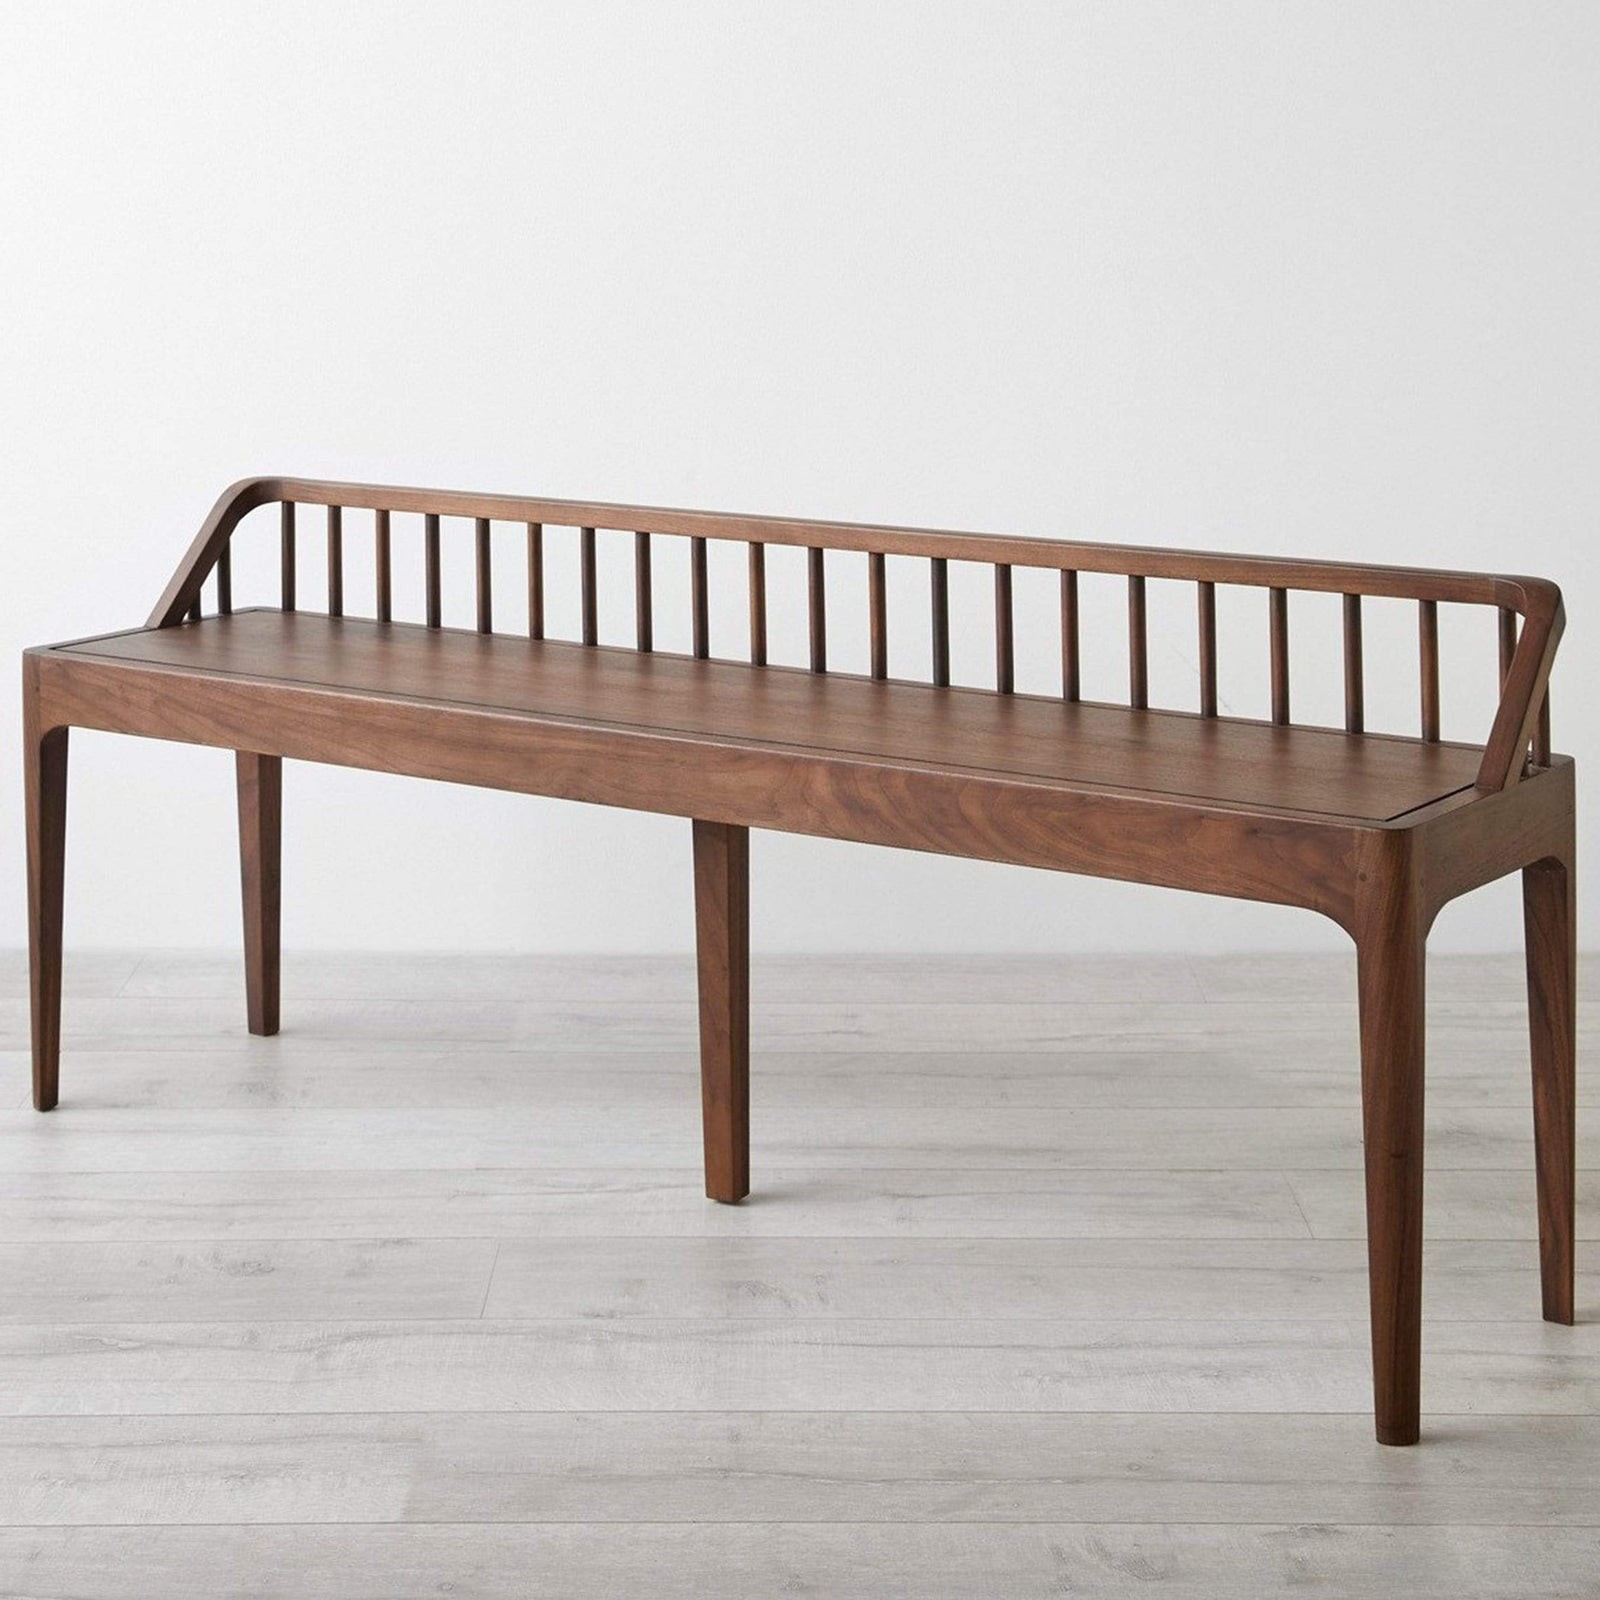 Ethnicraft Furniture Walnut Spindle Bench